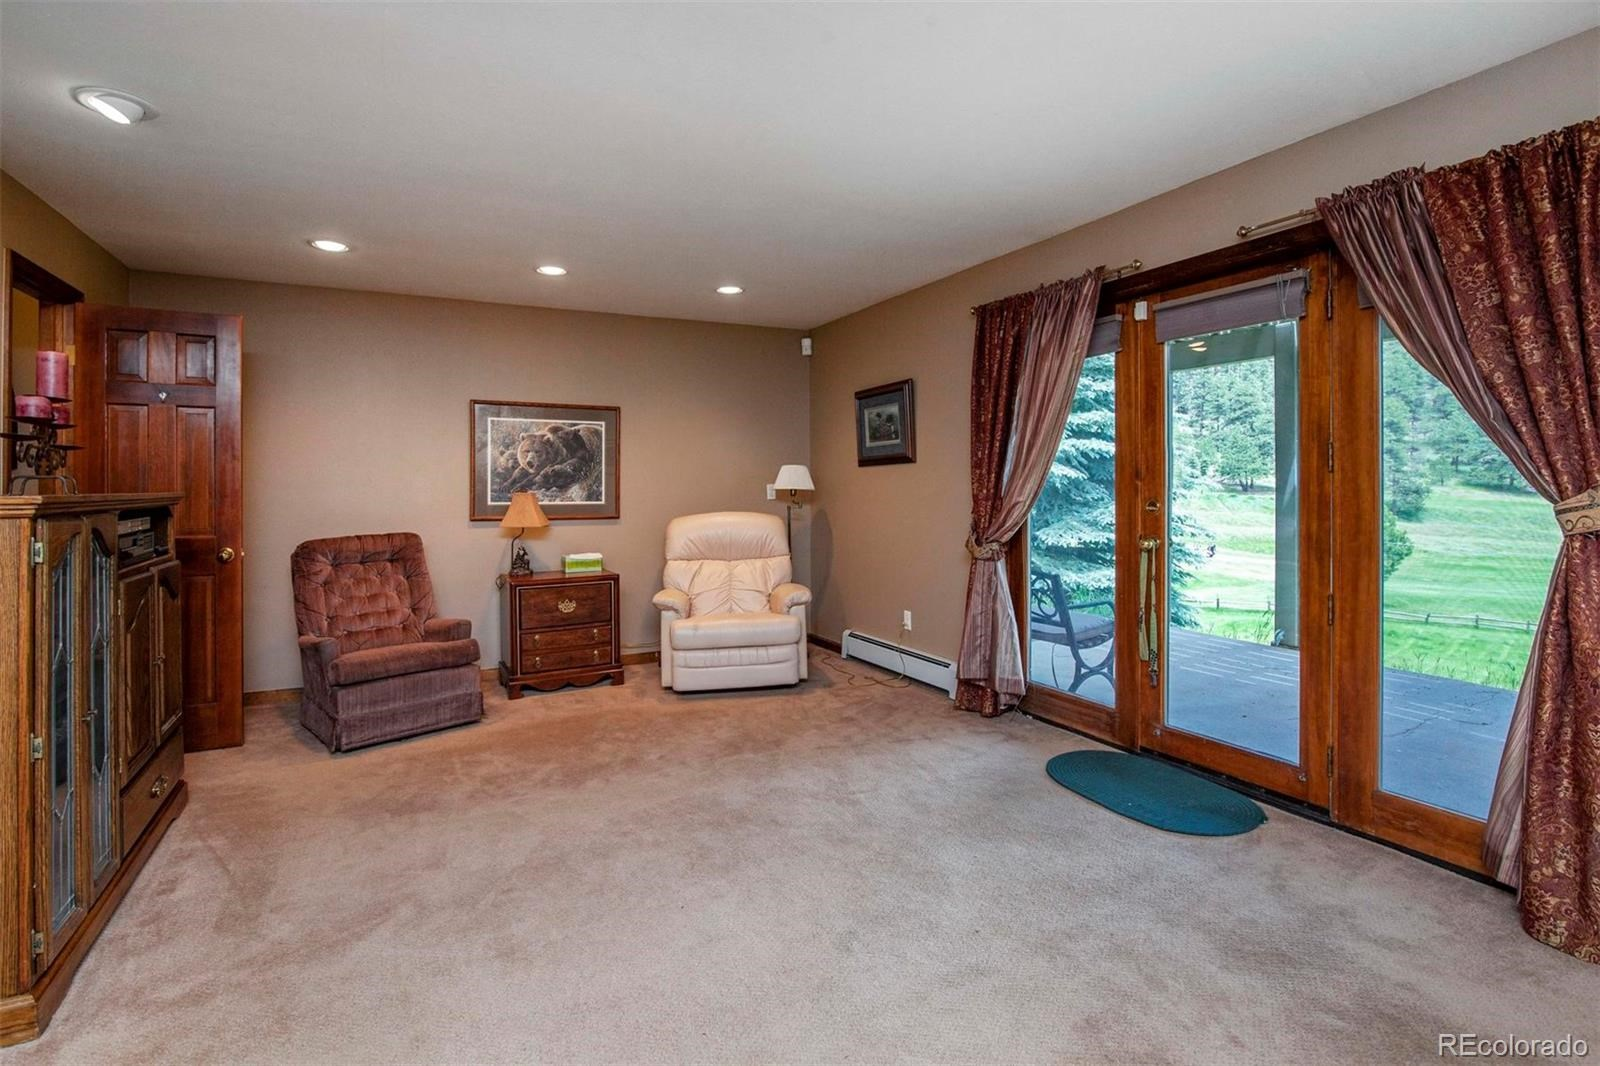 MLS# 5479240 - 20 - 5002 S Syndt Road, Evergreen, CO 80439